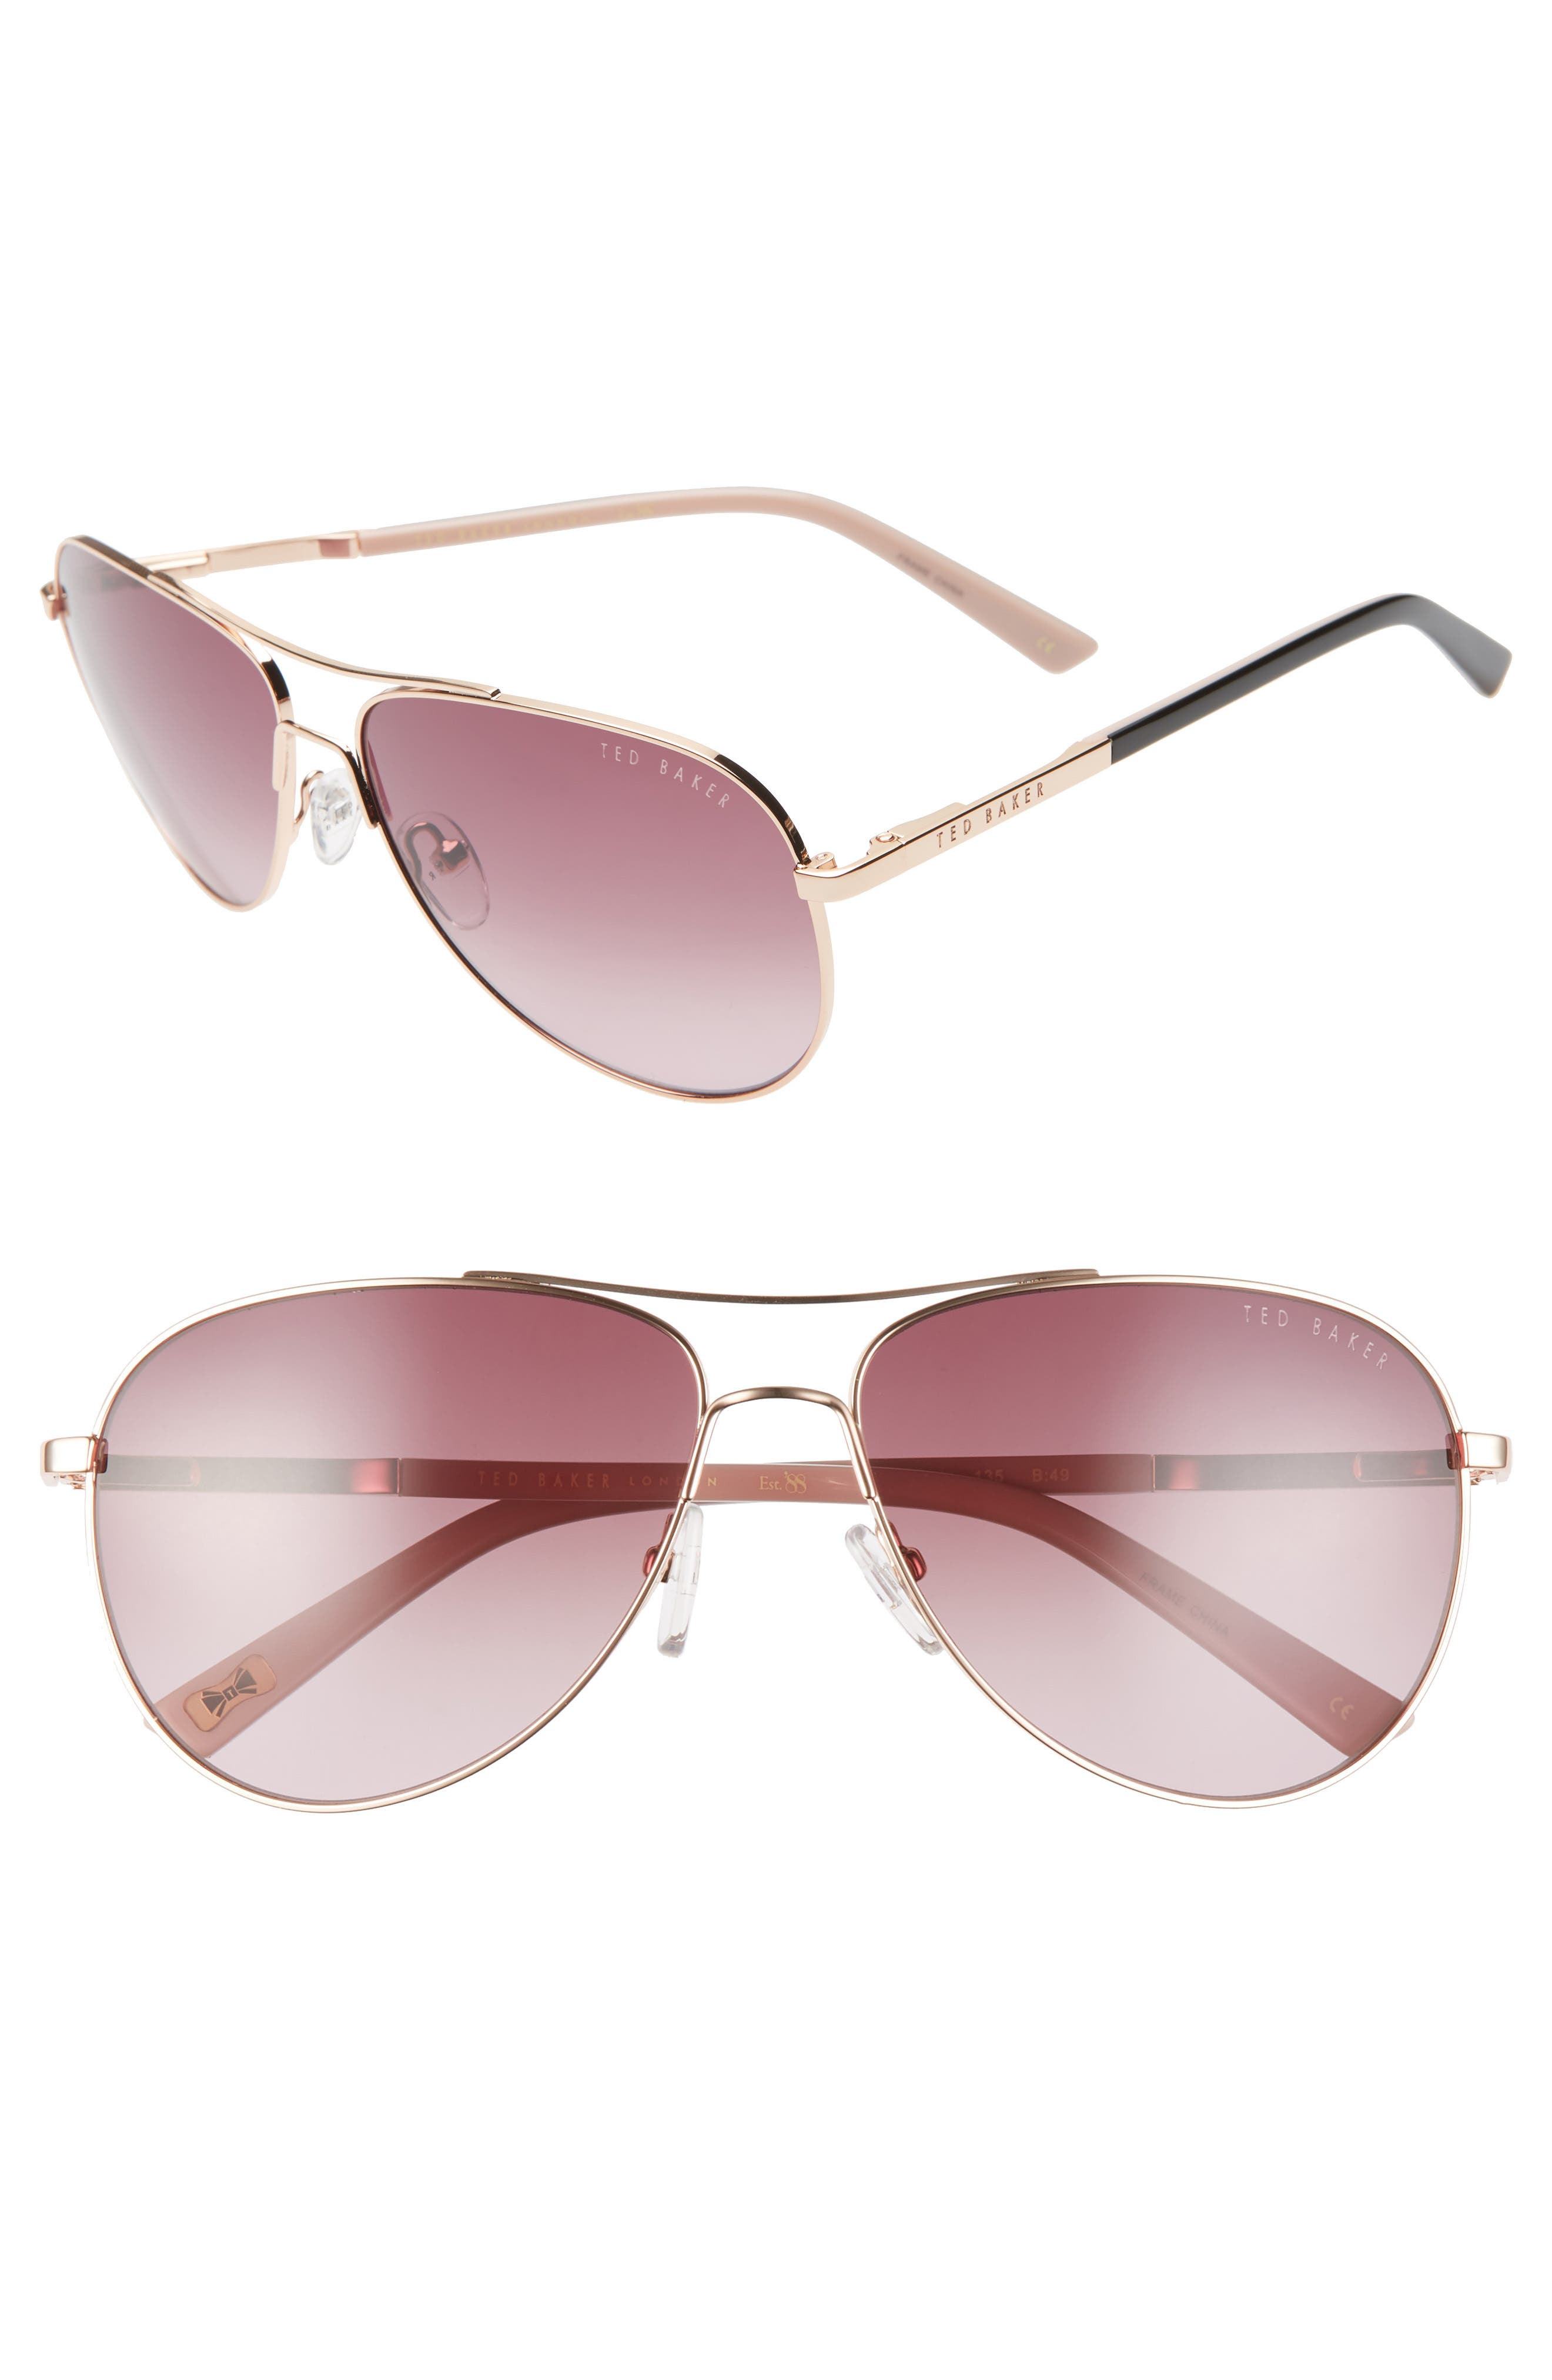 Softly tinted gradient lenses add romance to classic aviator sunglasses with slender metal frames. Style Name: Ted Baker London 58mm Tinted Gradient Aviator Sunglasses. Style Number: 5987438. Available in stores.